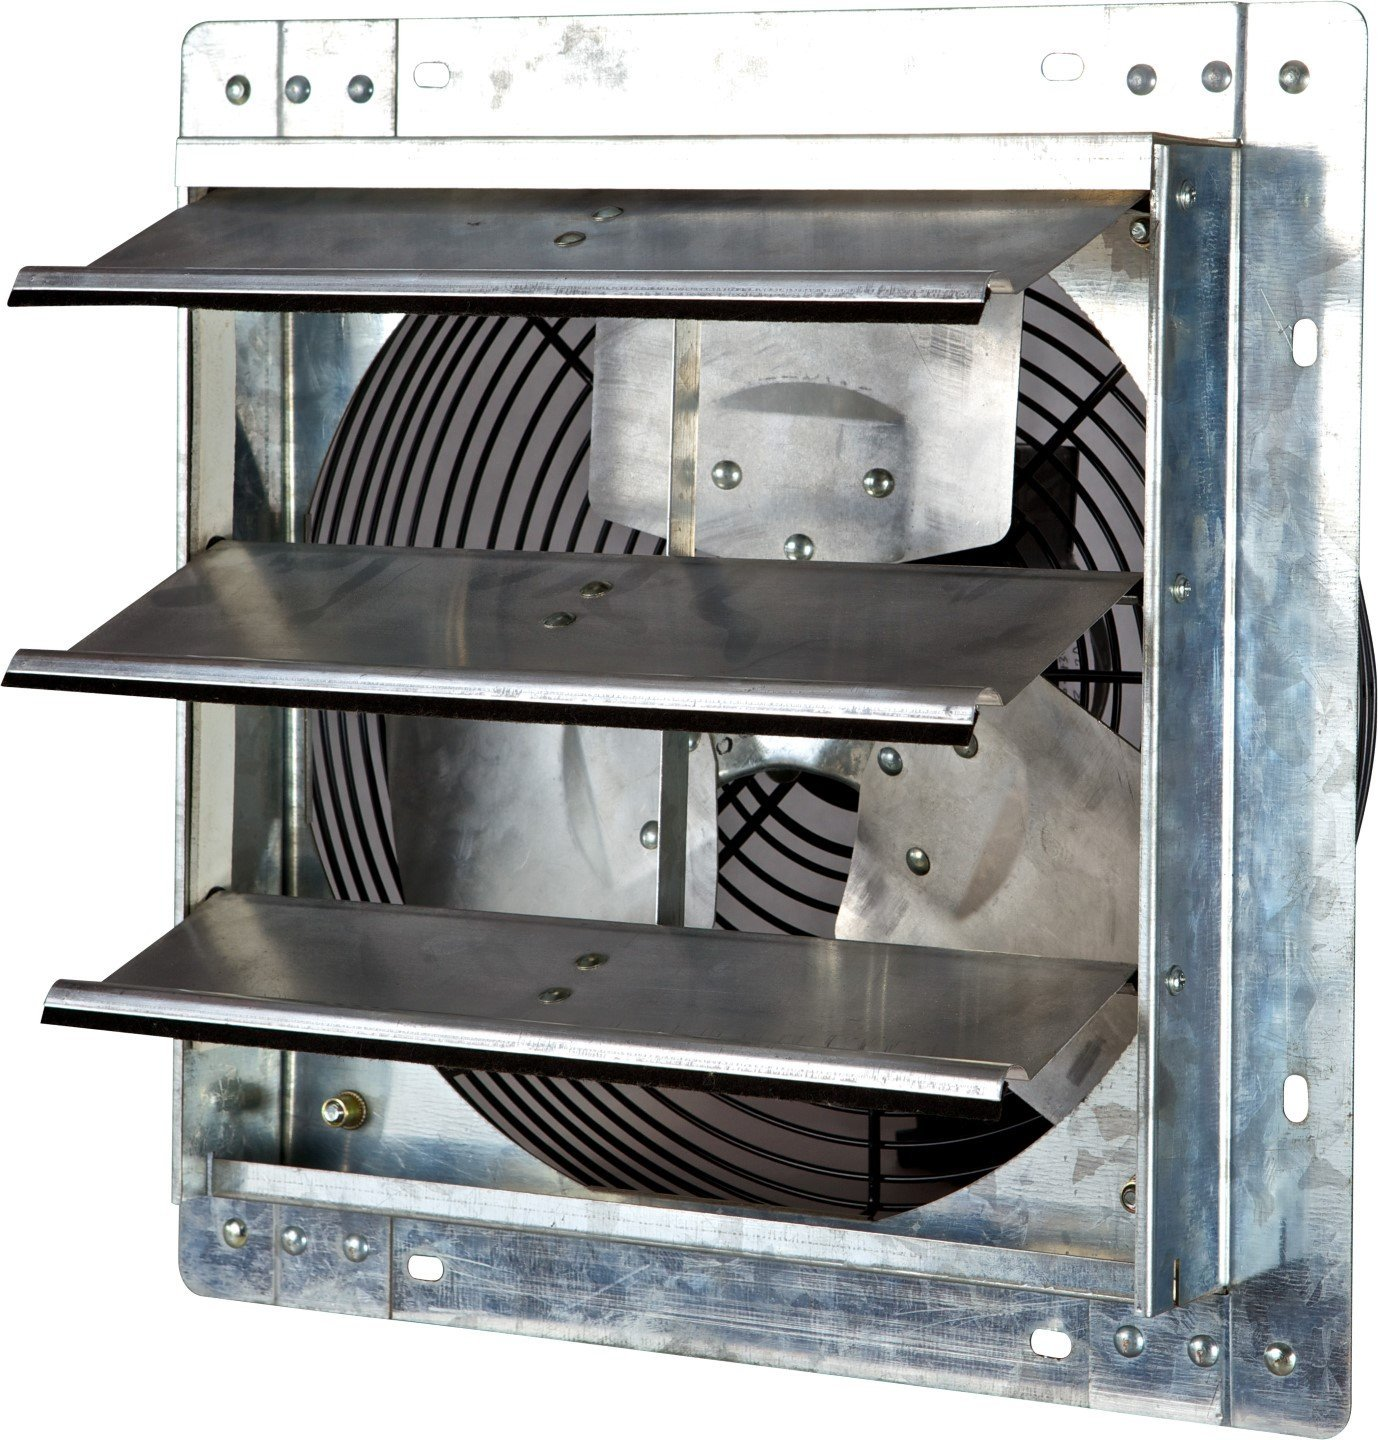 Iliving ILG8SF12V Wall-Mounted Variable Speed Shutter Exhaust Fan, 12''